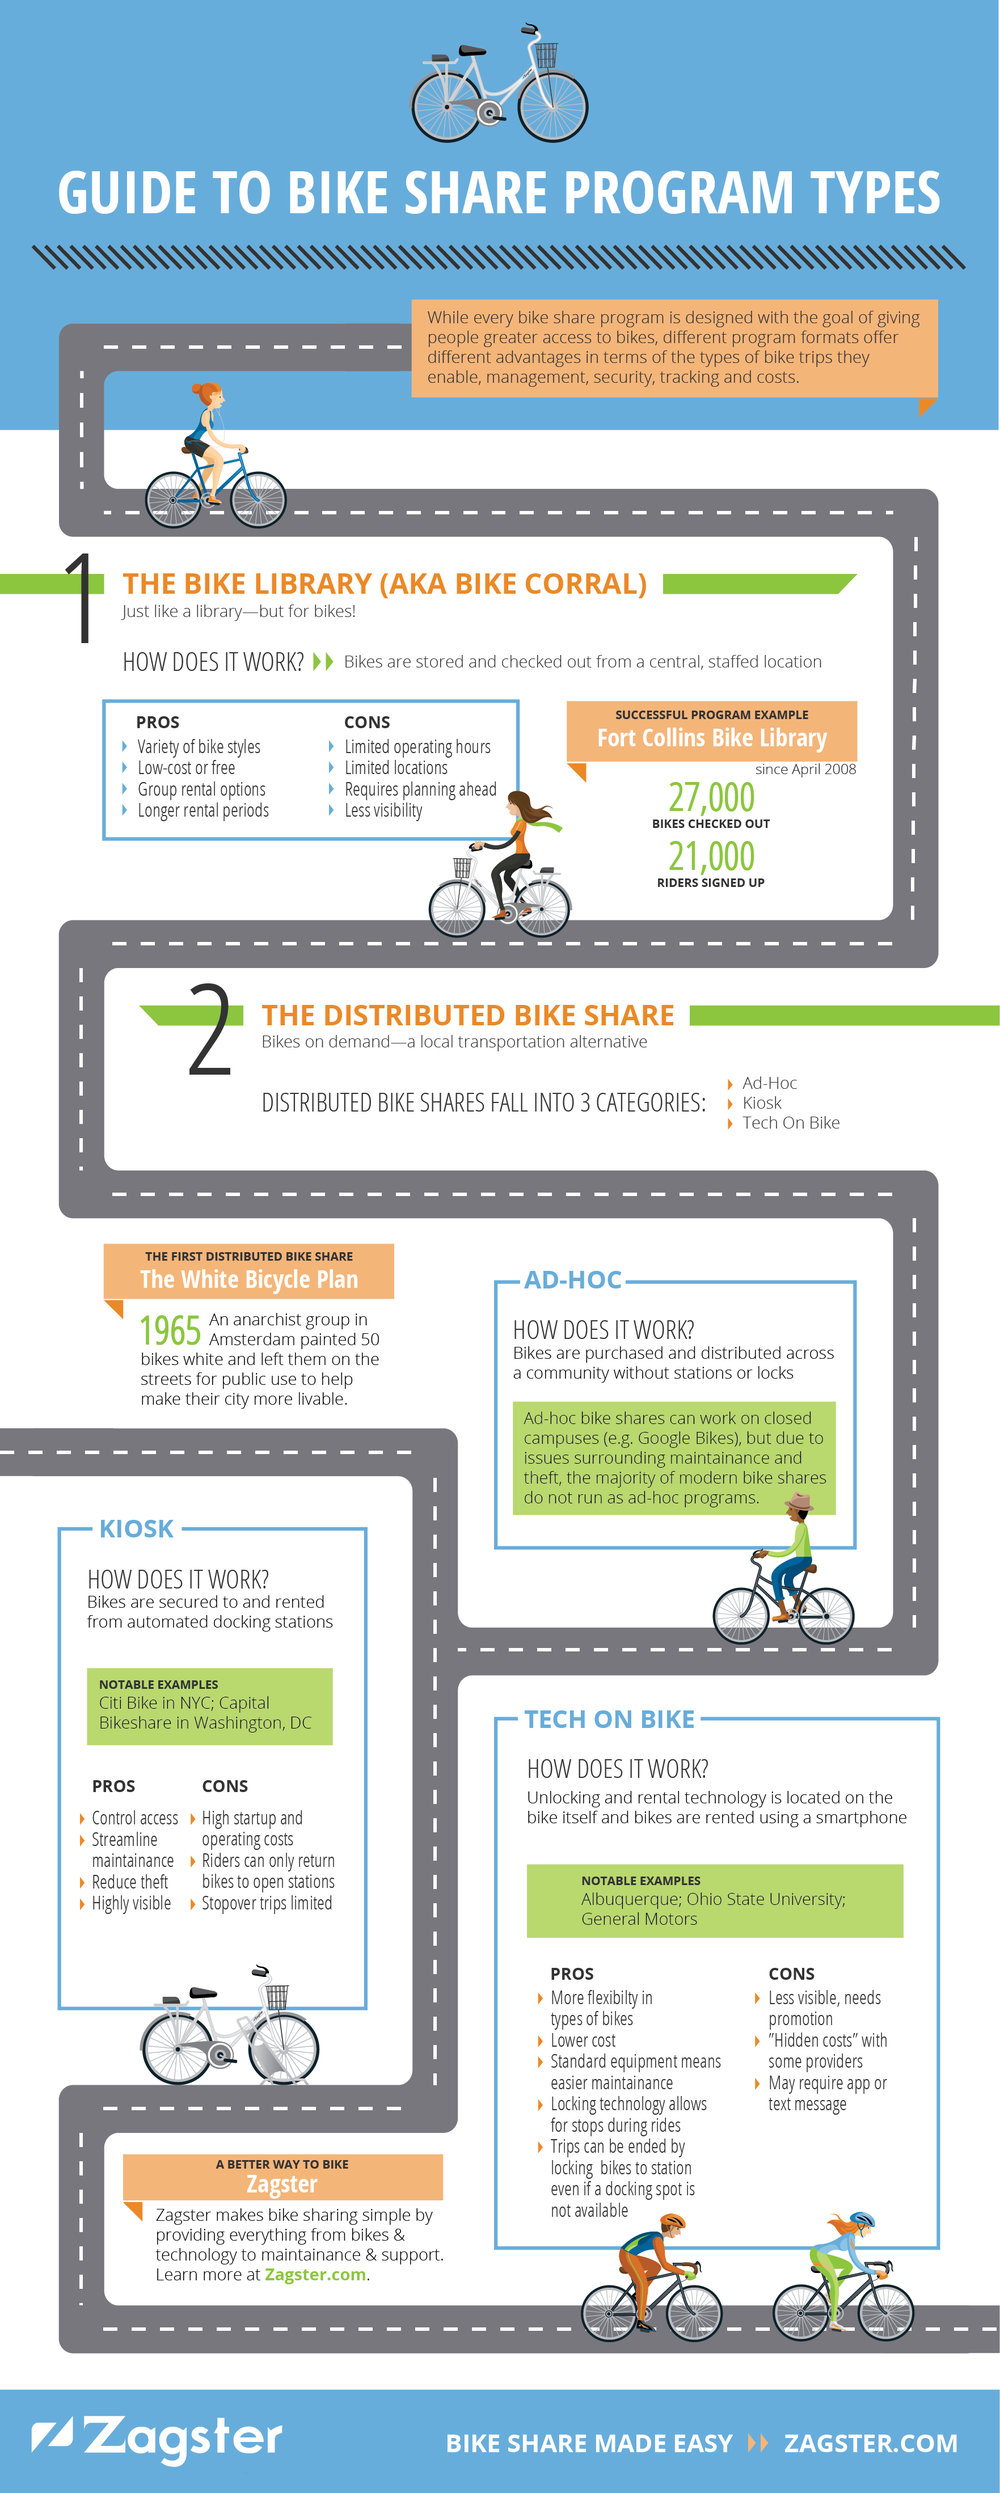 Bike-Share-Types-Infographic-Final-Web.png